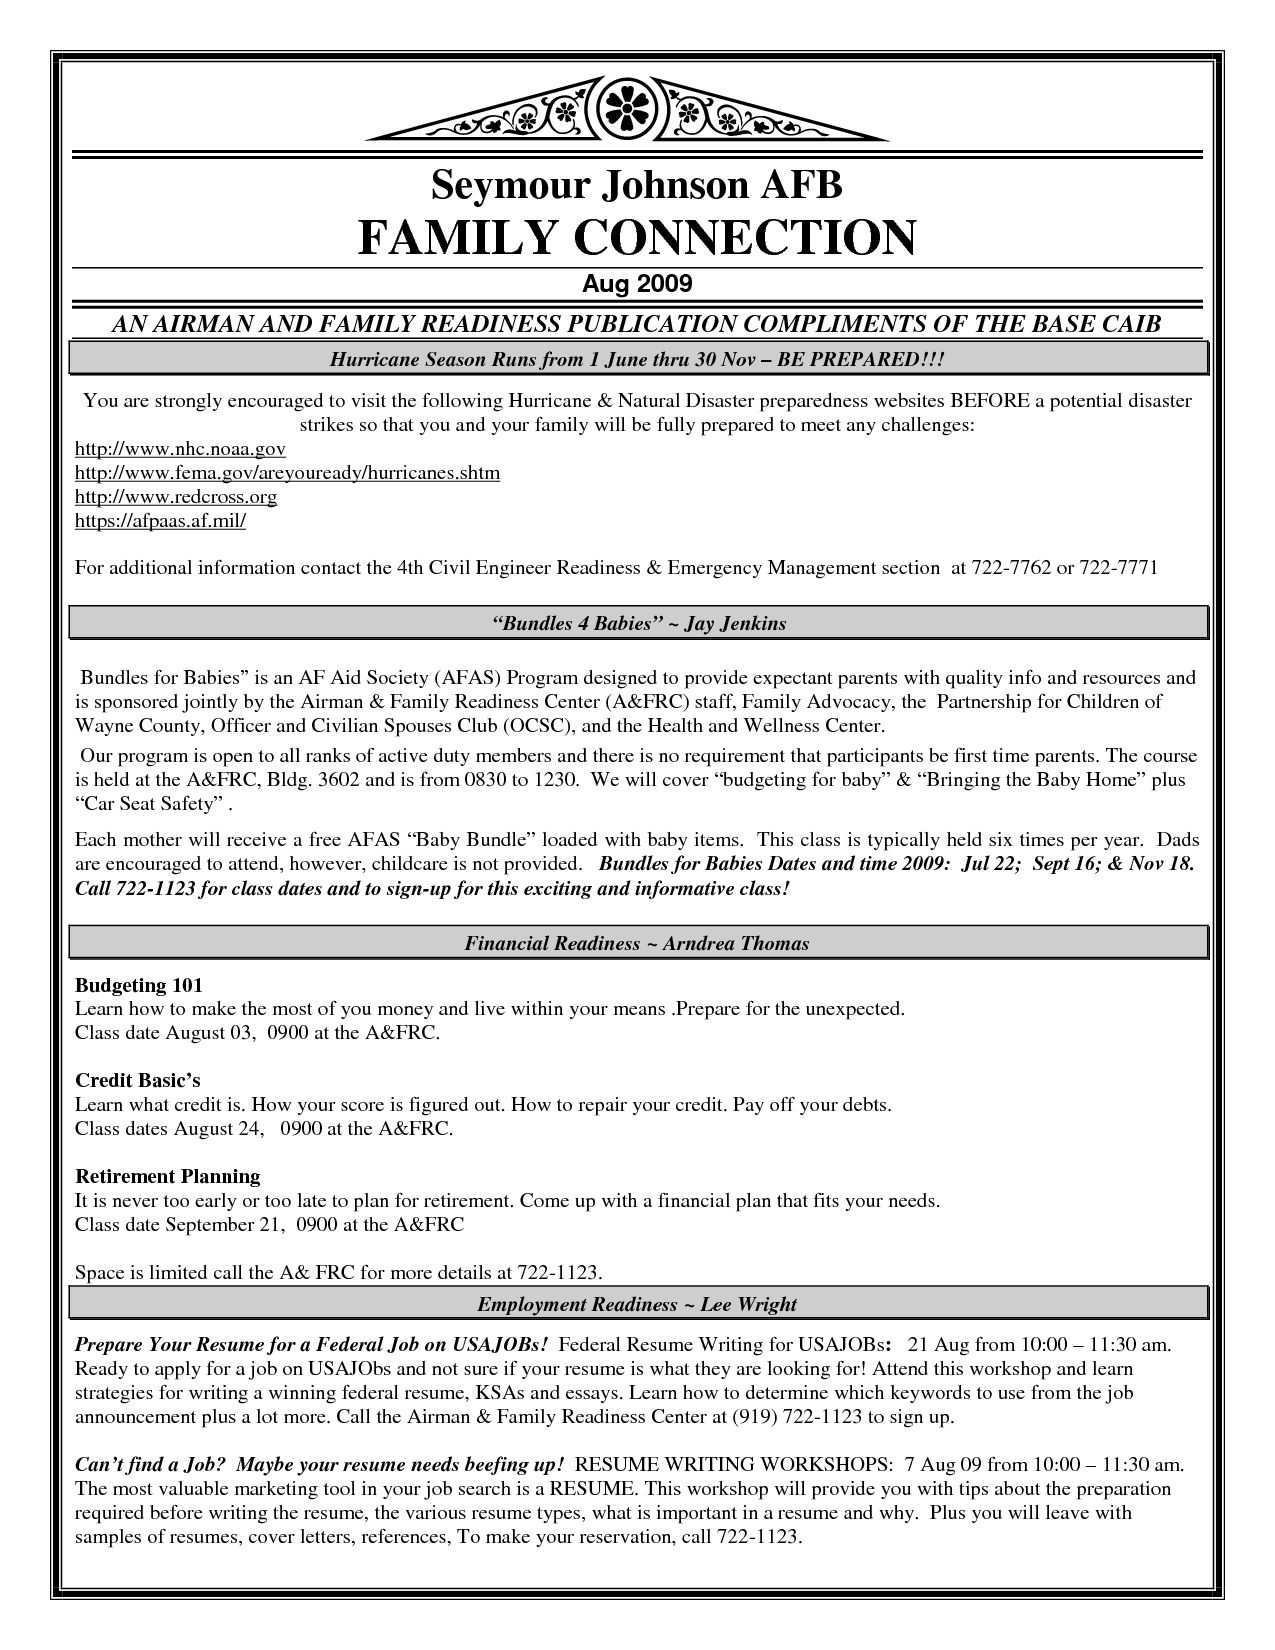 free resume templates you can print examples printable creative template make and for Resume Make And Print Resume For Free